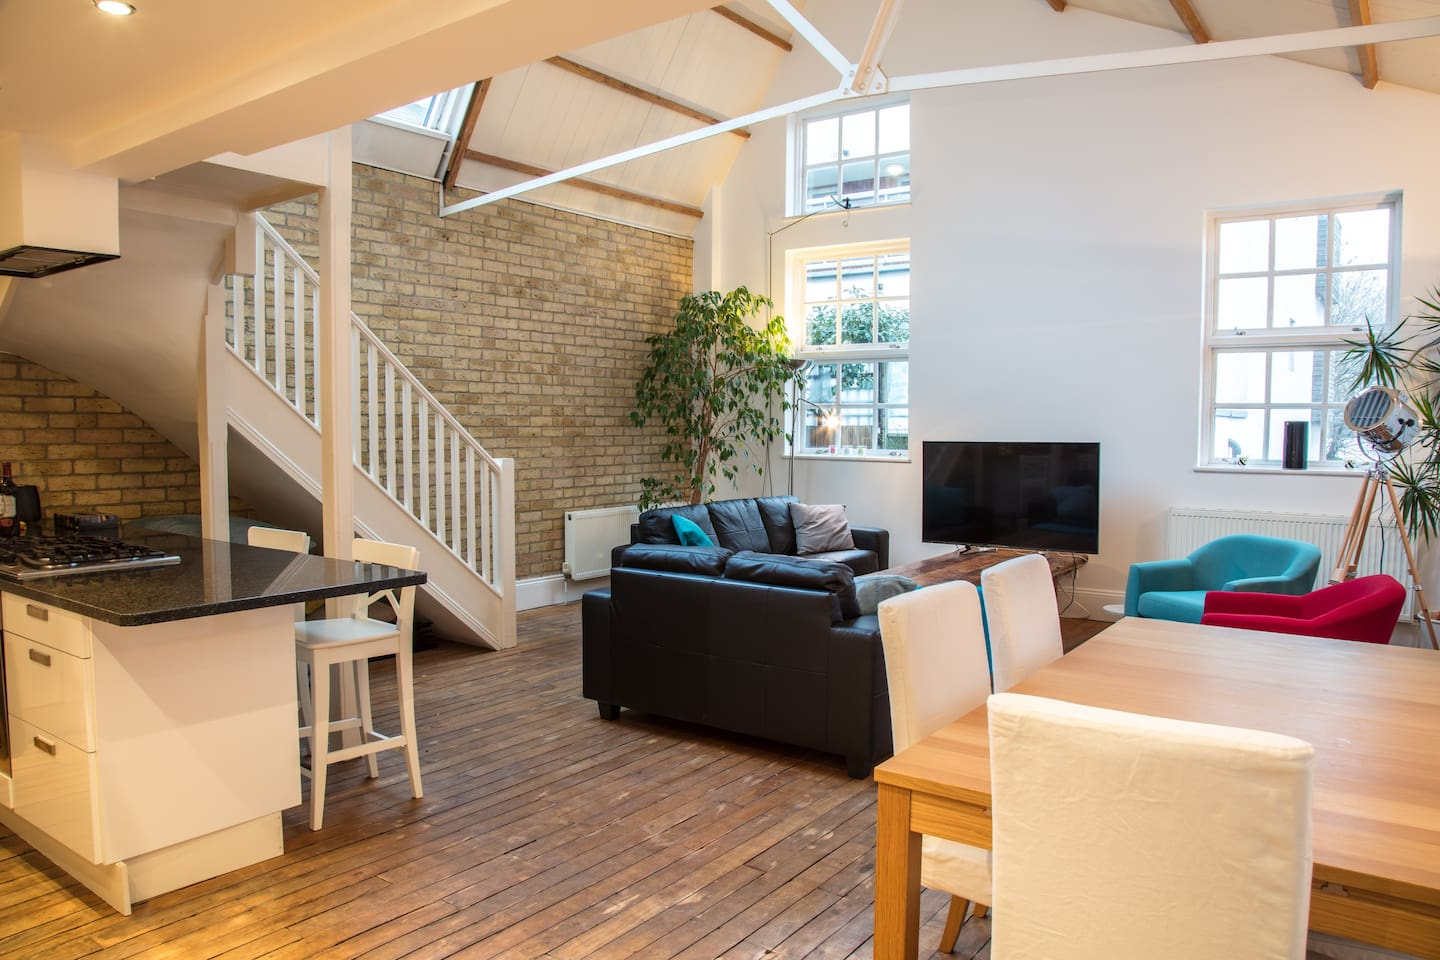 Open plan living space/kitchen with high ceiling and original brickwork